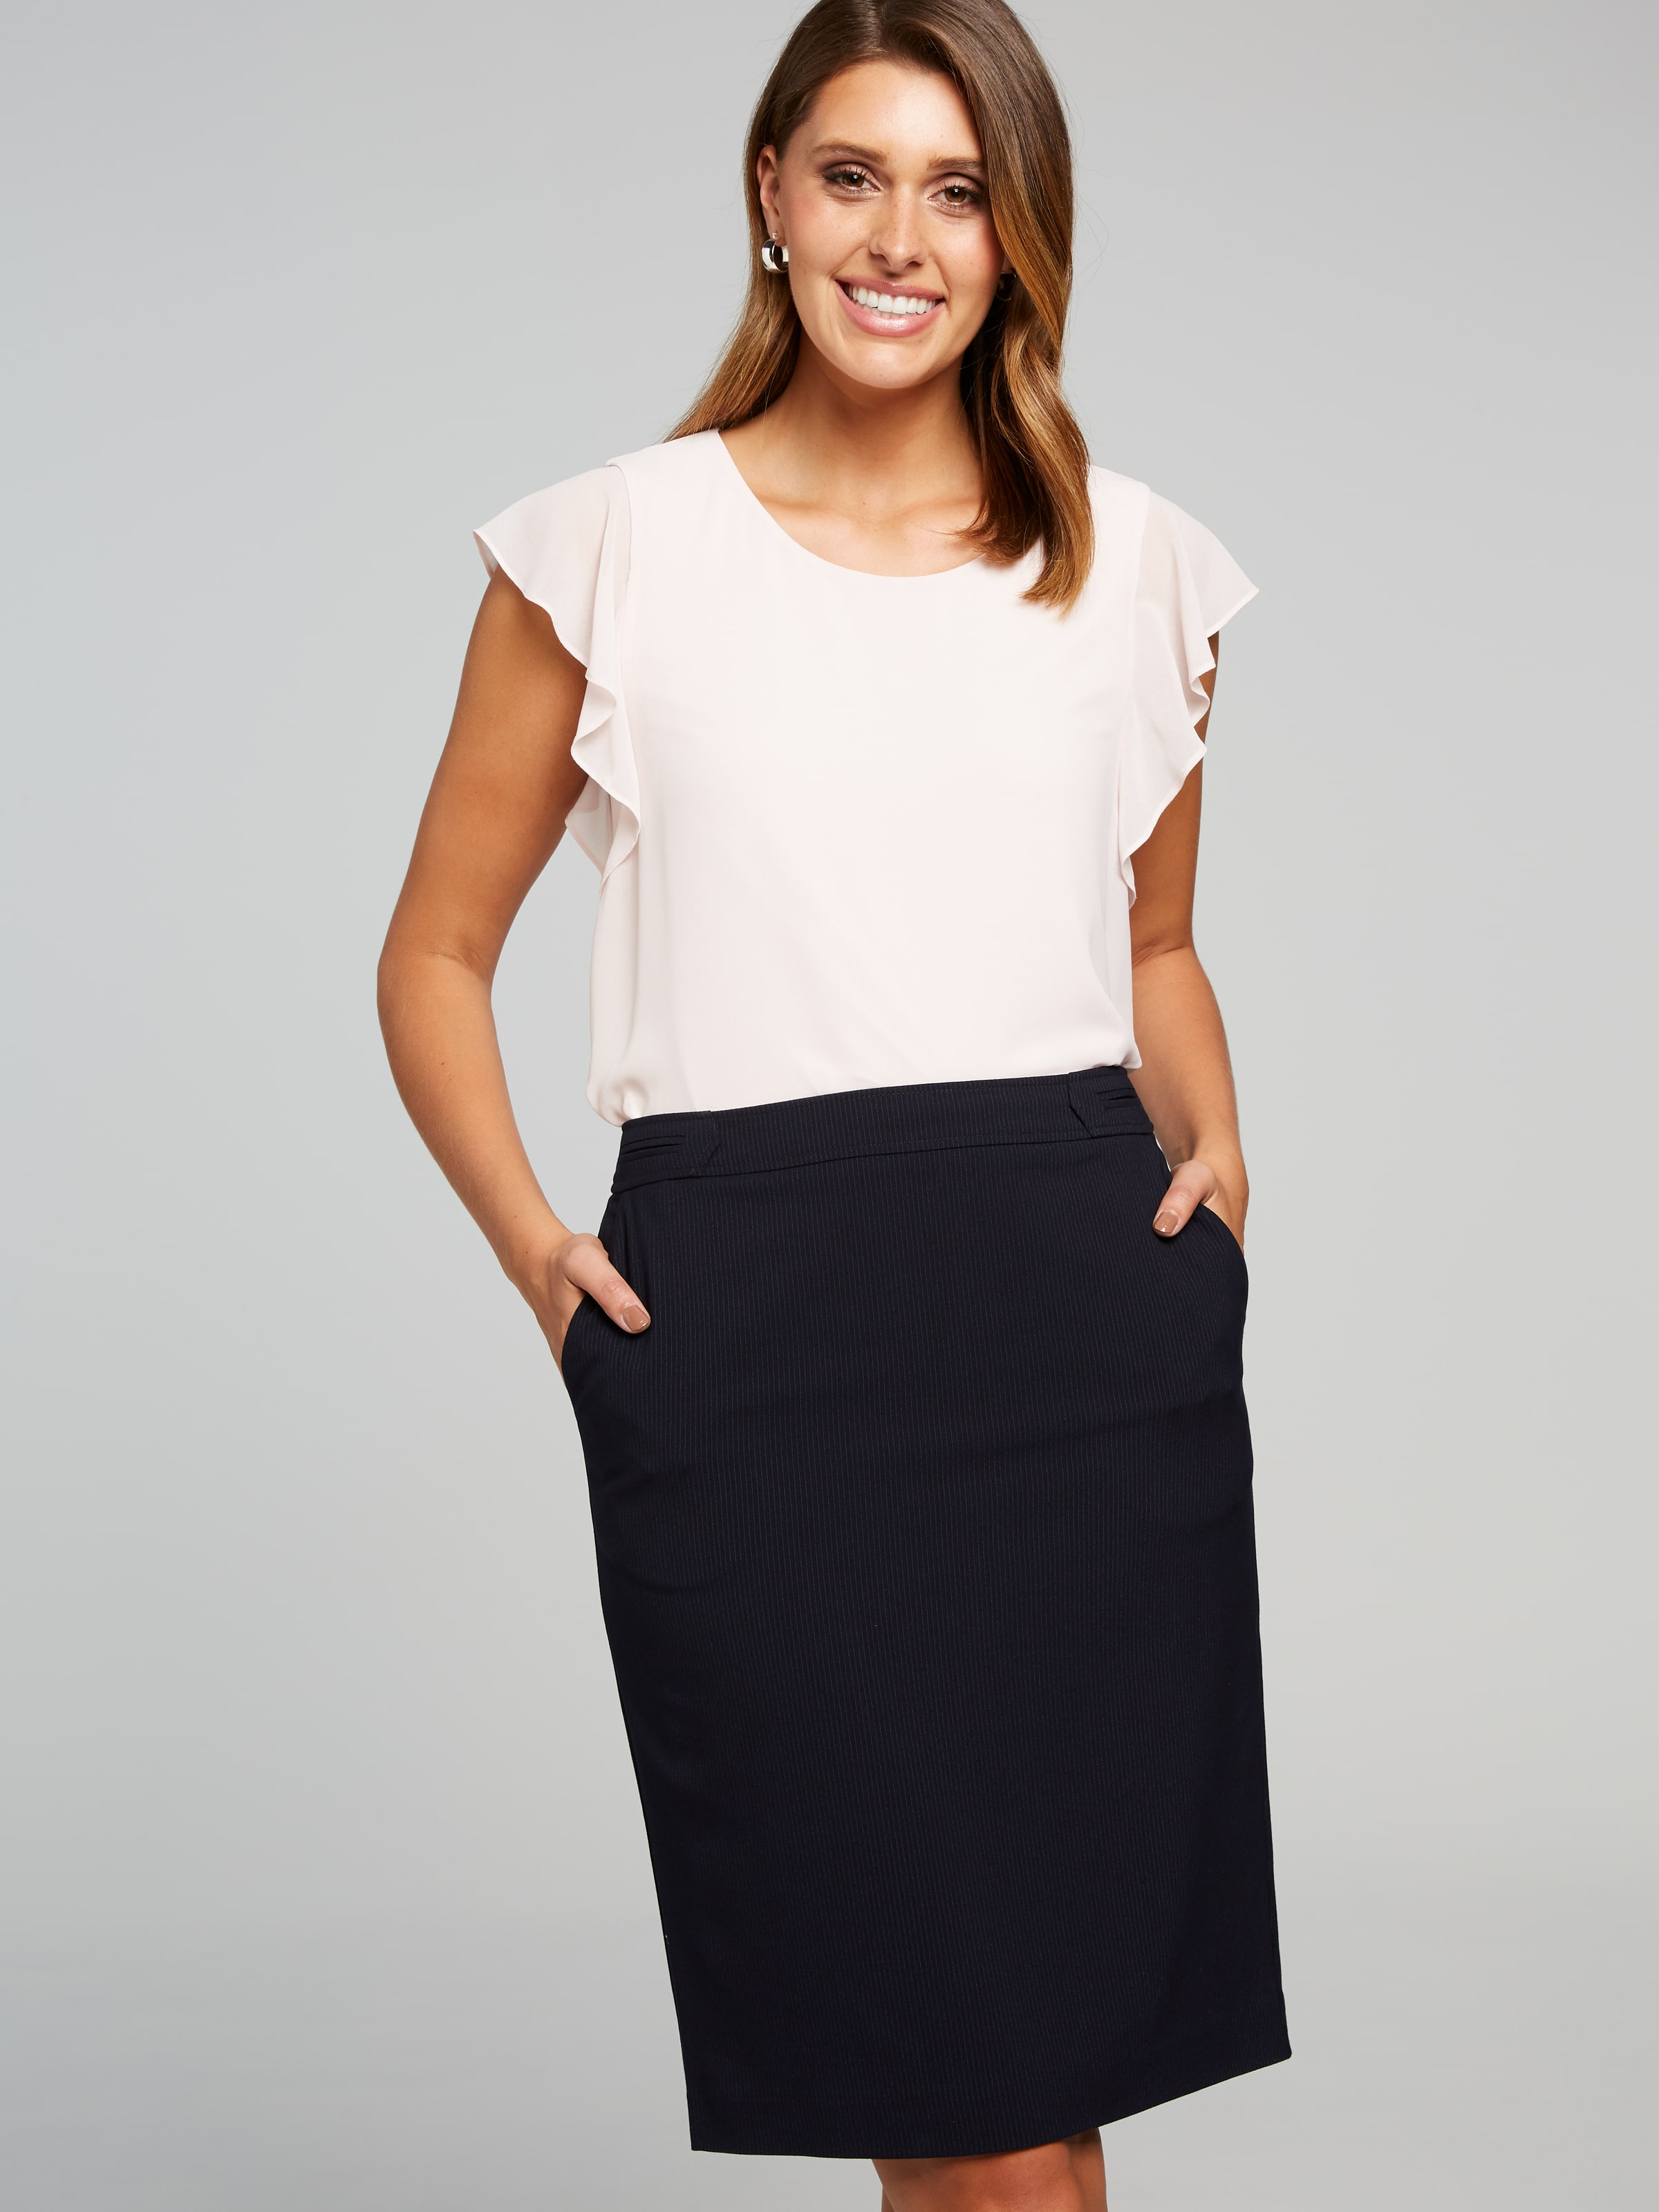 Introducing our new 'Suits You' collection. This stylish Dallas Pinstripe Suit Skirt adds a fashion statement to your work wardrobe. This skirt comes fully lined, with invisible back zip and is a classic pencil shape. Co-ordinating items.(Navy, 6)